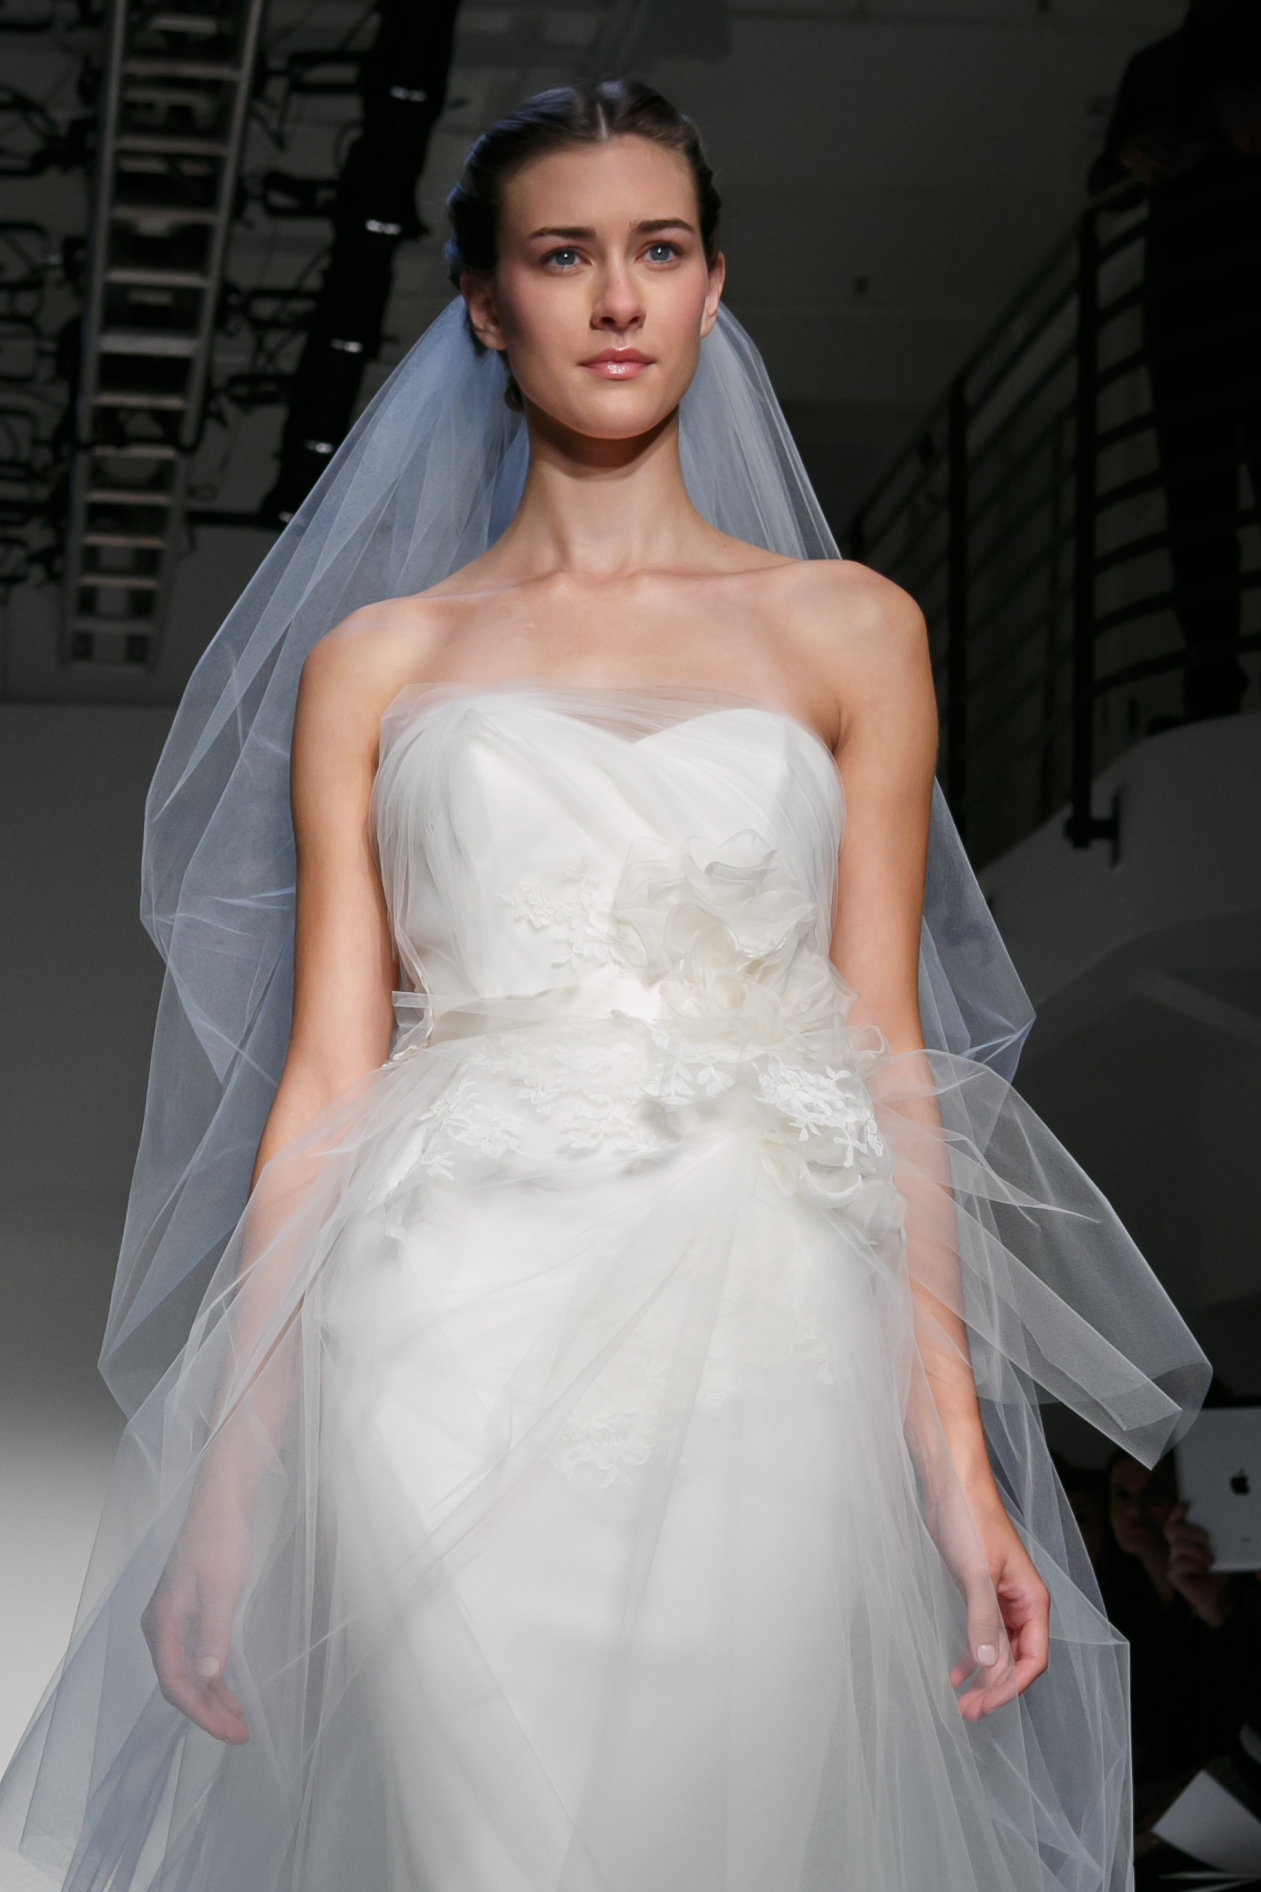 Fall-2013-wedding-dress-by-christos-amsale-bridal-12b.original